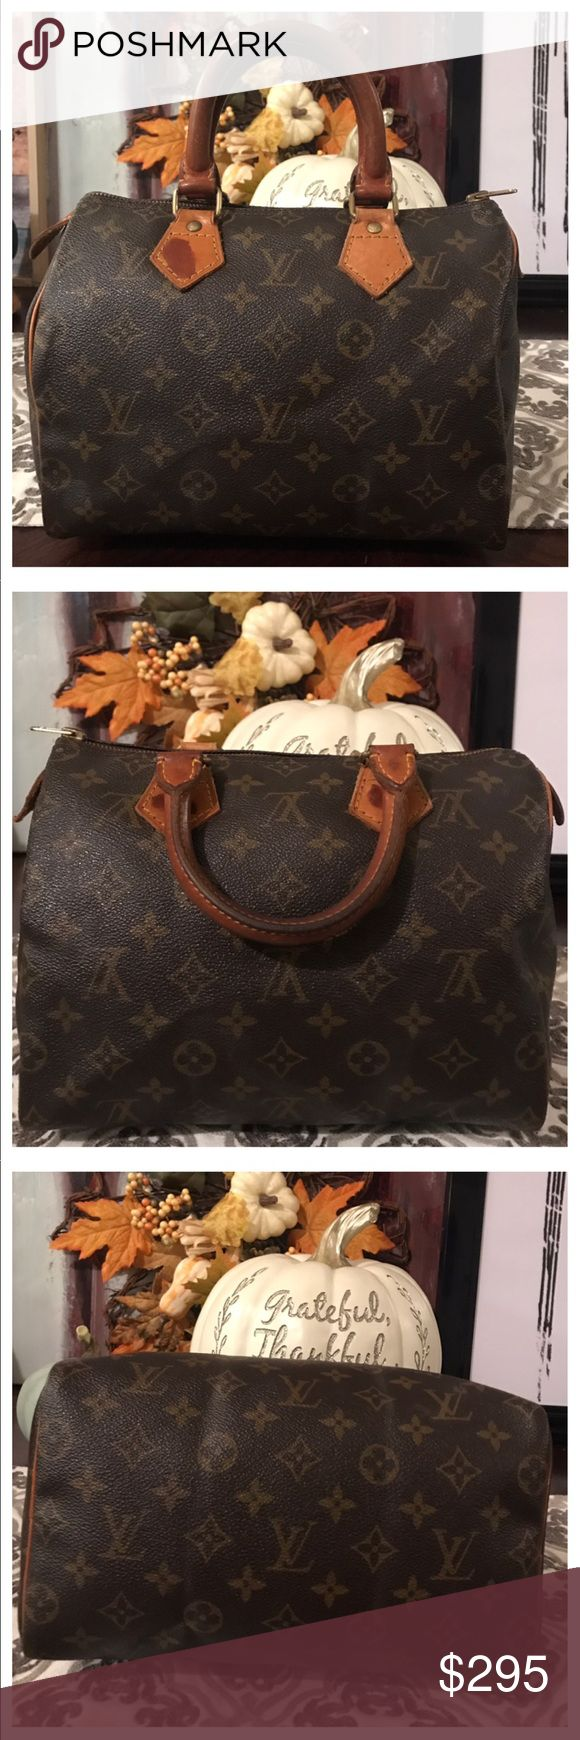 "AUTHENTIC LOUIS VUITTON SPEEDY 35 100% Authentic Louis Vuitton Speedy 25. Monogram canvas has no scratches or tears. Vachetta leather shows stains. Handles are in good shape, some dark patina on top. Piping is intact. Zipper works properly. Zipper pull tag is missing. Inside and pocket is in good condition. W9.84""xH7.48""xD5.90"" No trades Date code 894 FC Louis Vuitton Bags Satchels"